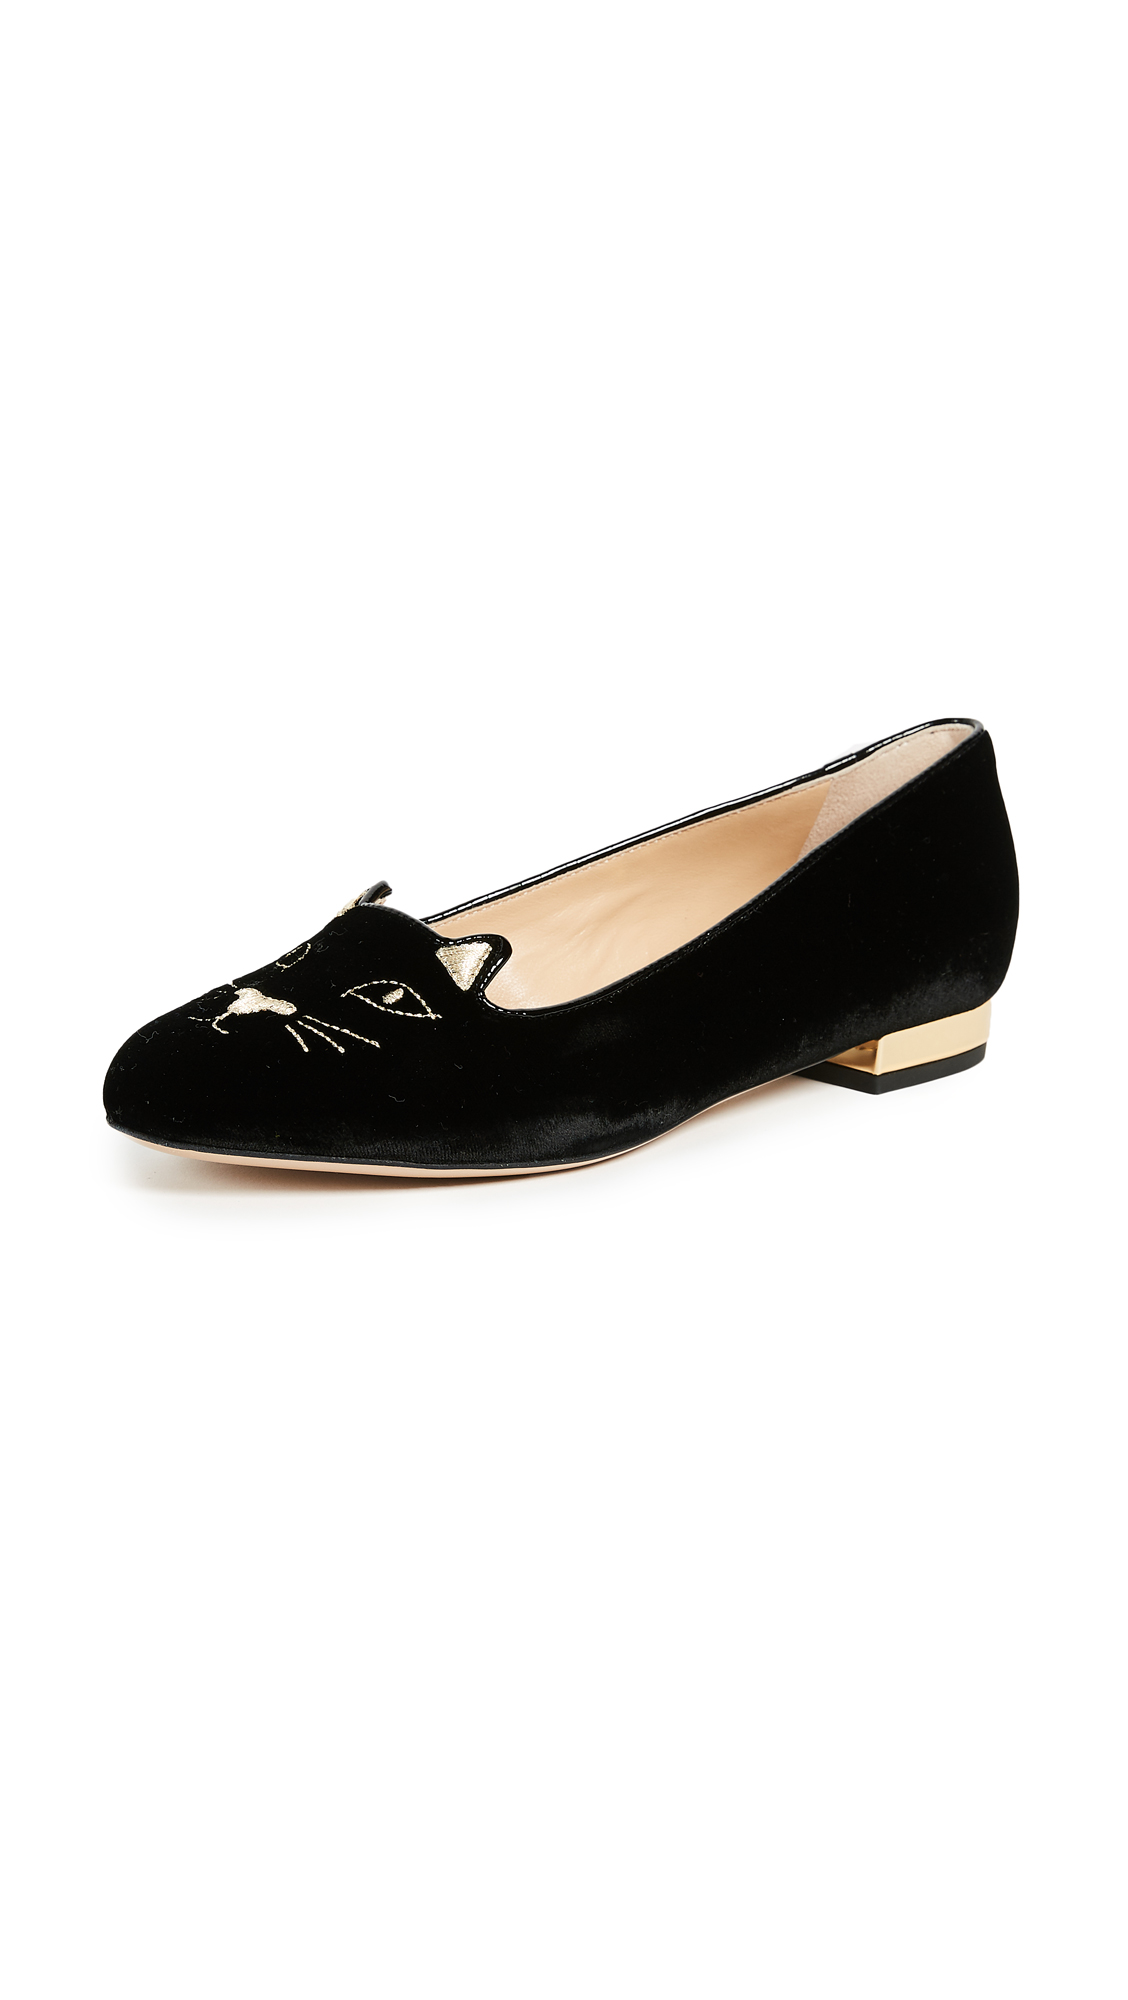 Charlotte Olympia Kitty Flats - Black/Gold